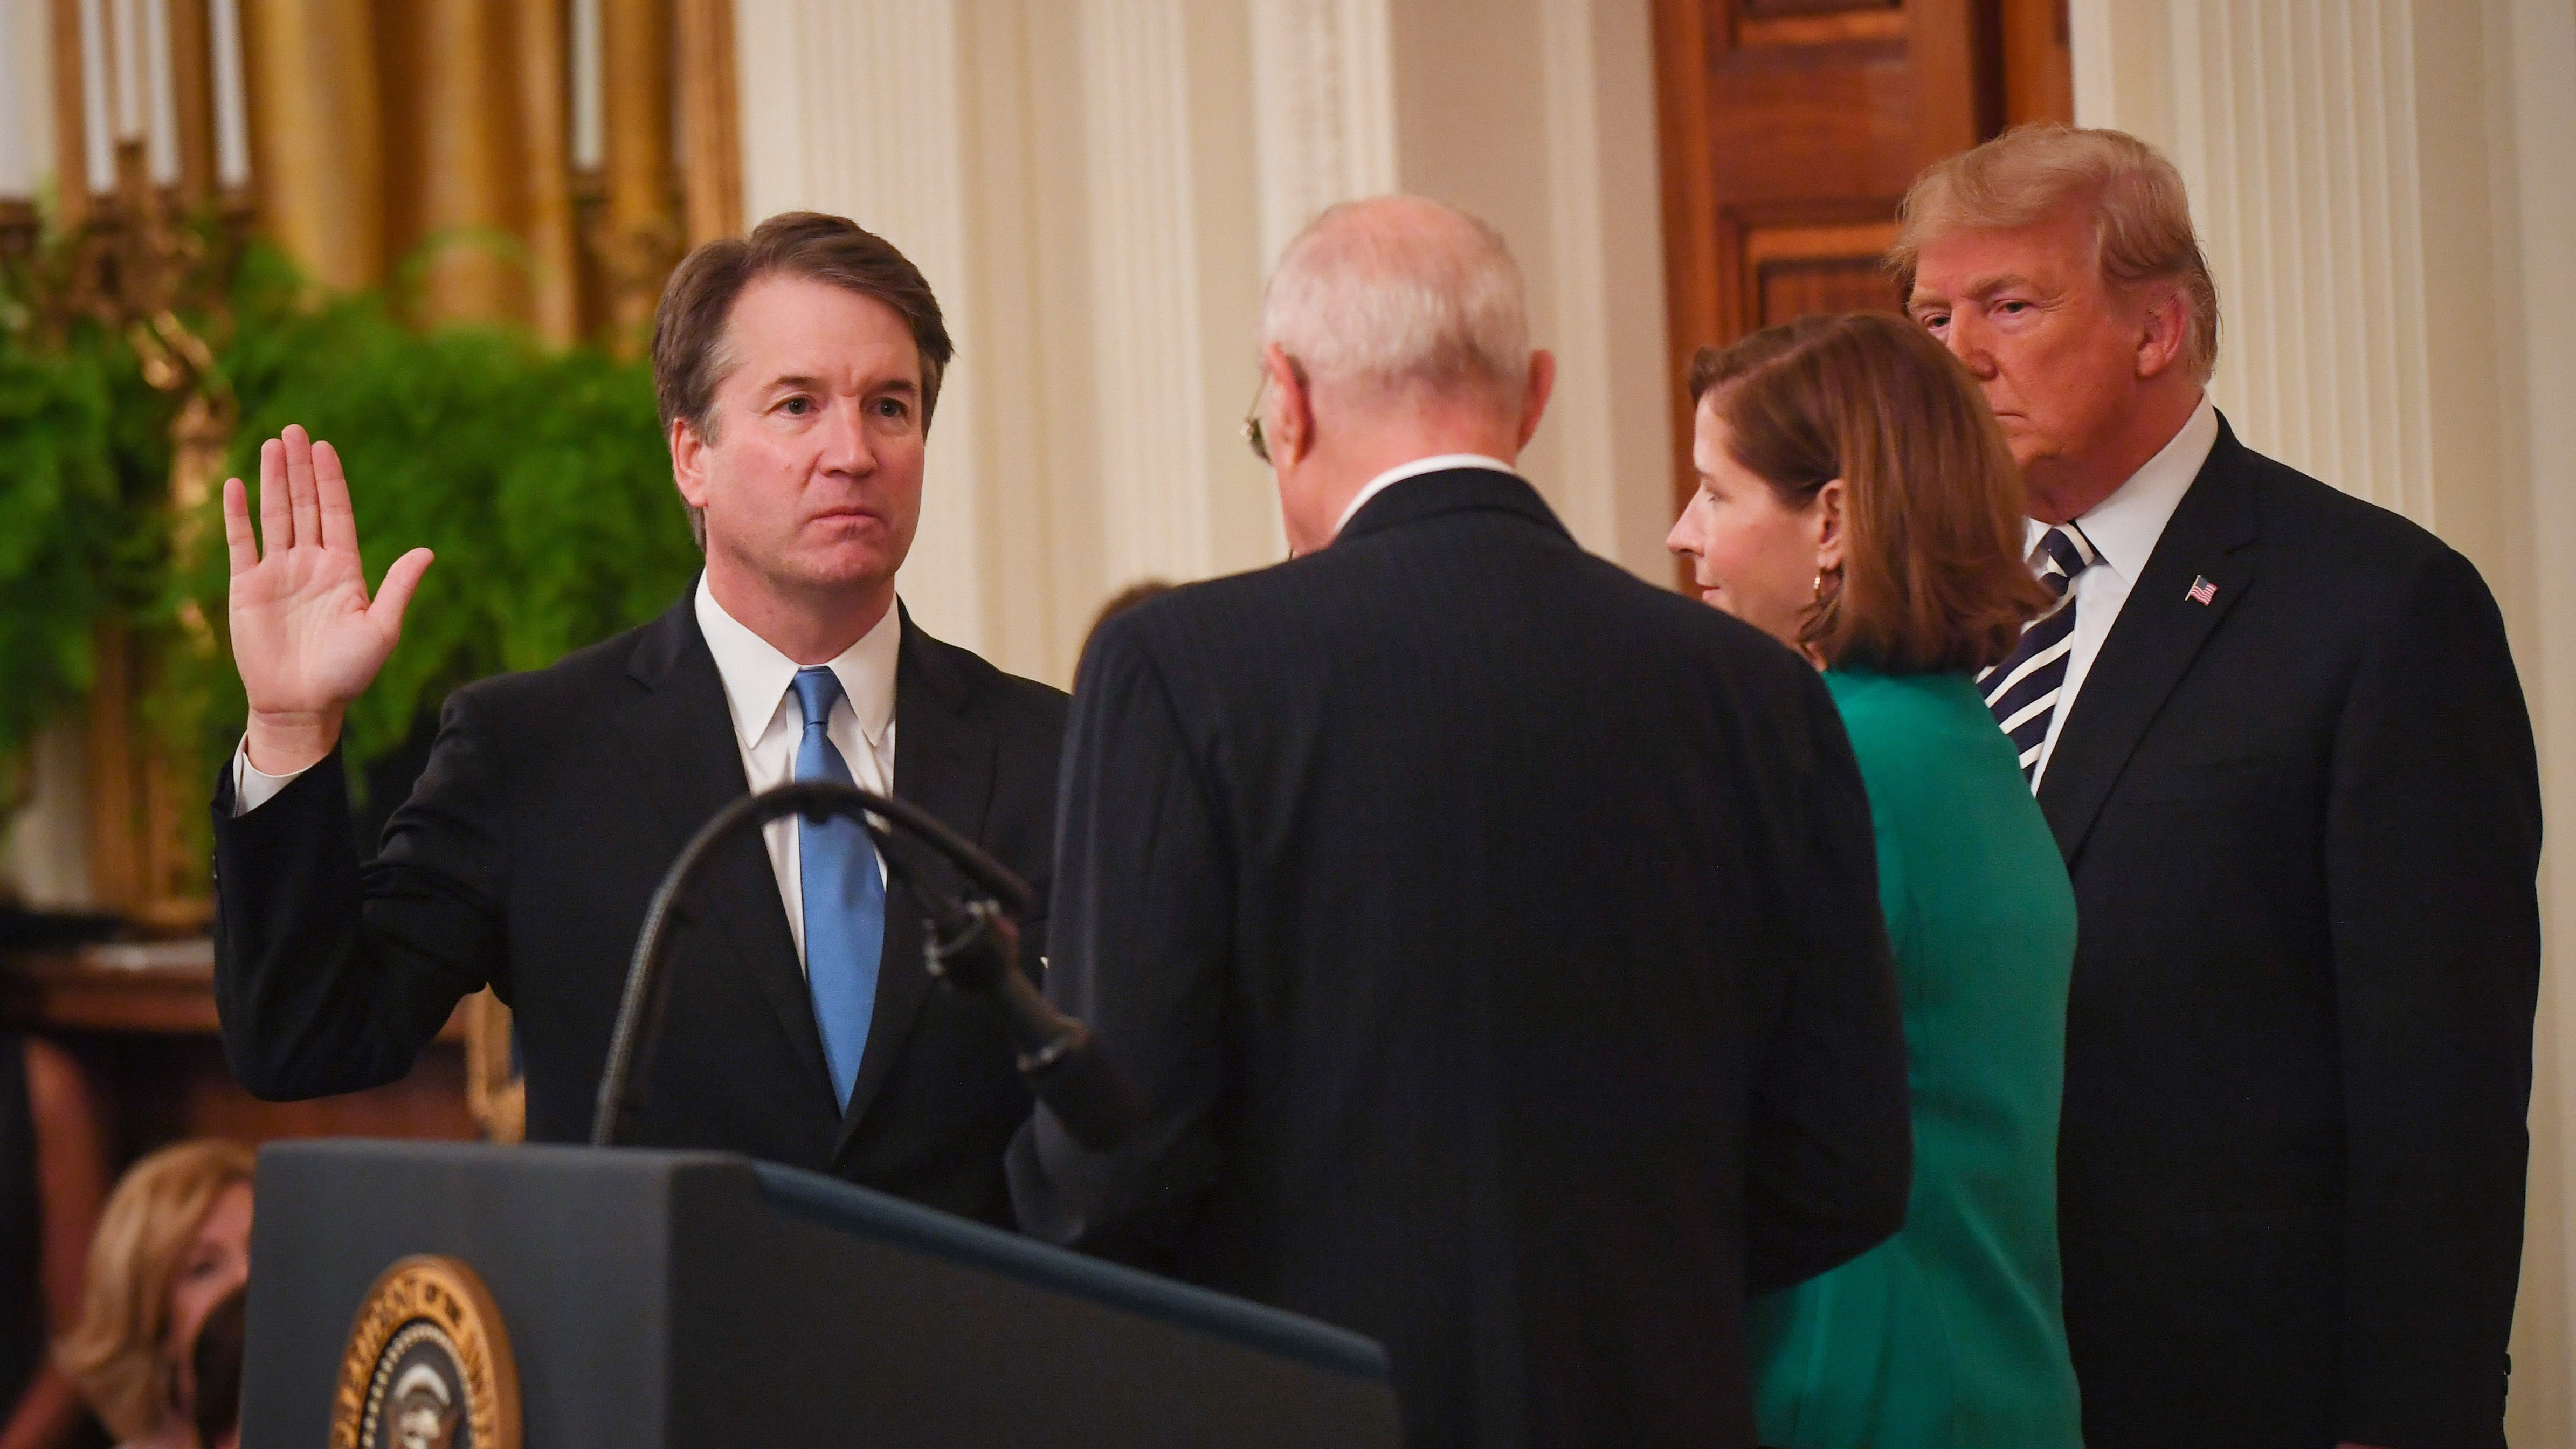 Newly confirmed Supreme Court Justice Brett Kavanaugh is sworn-in by retired Supreme Court Justice Anthony Kennedy.